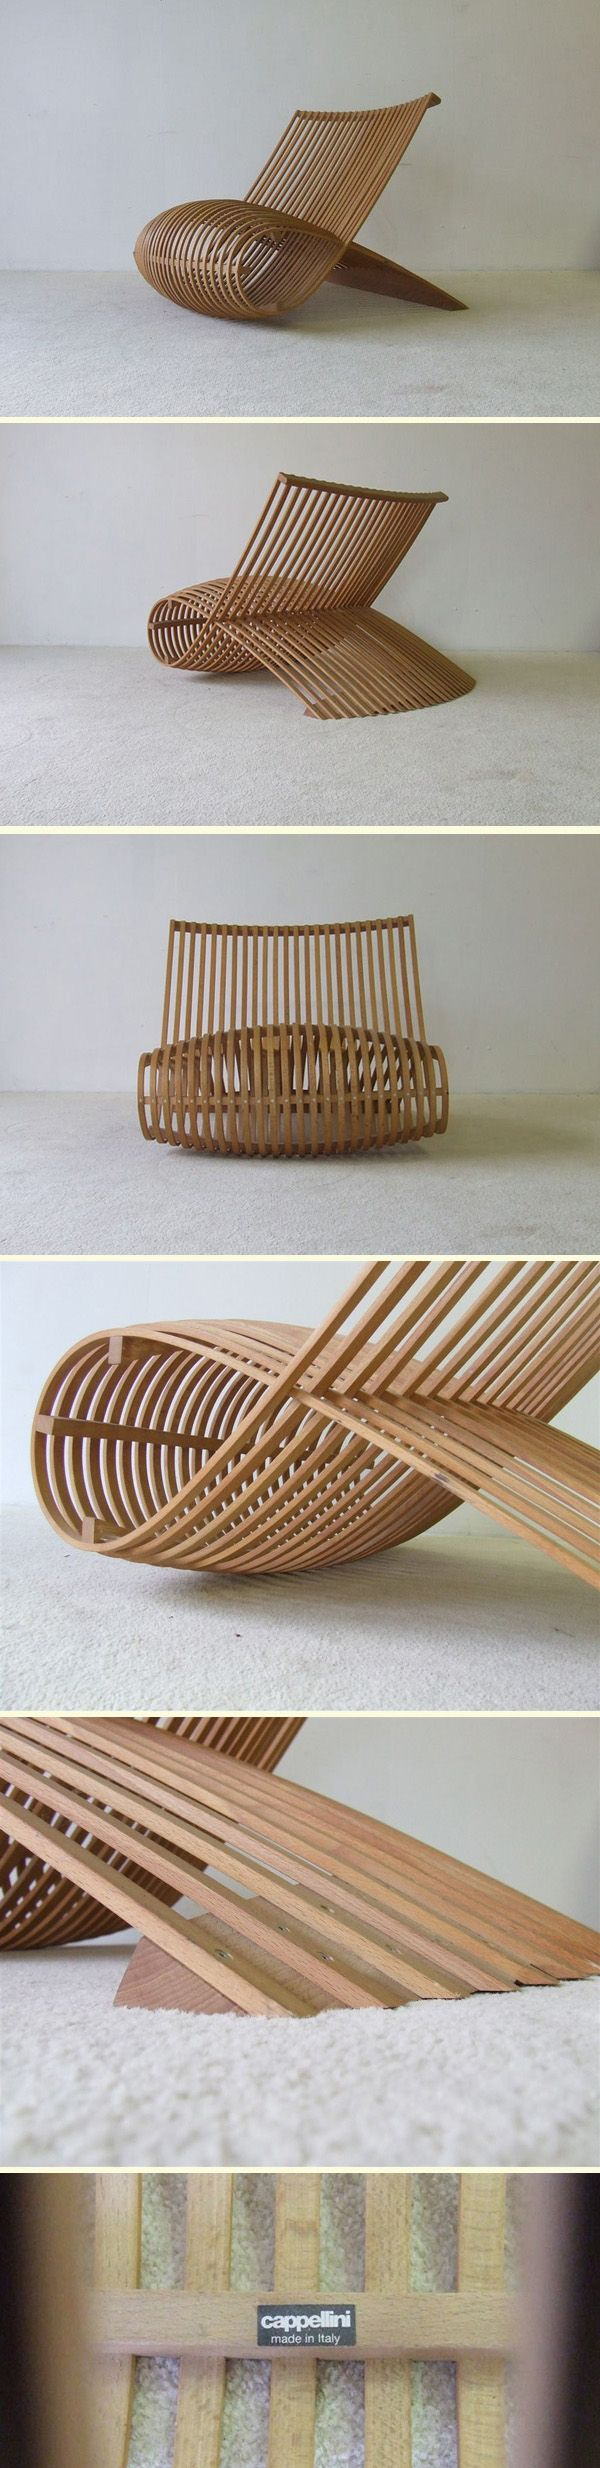 CAPPELLINI Wooden Chair by Marc Newson